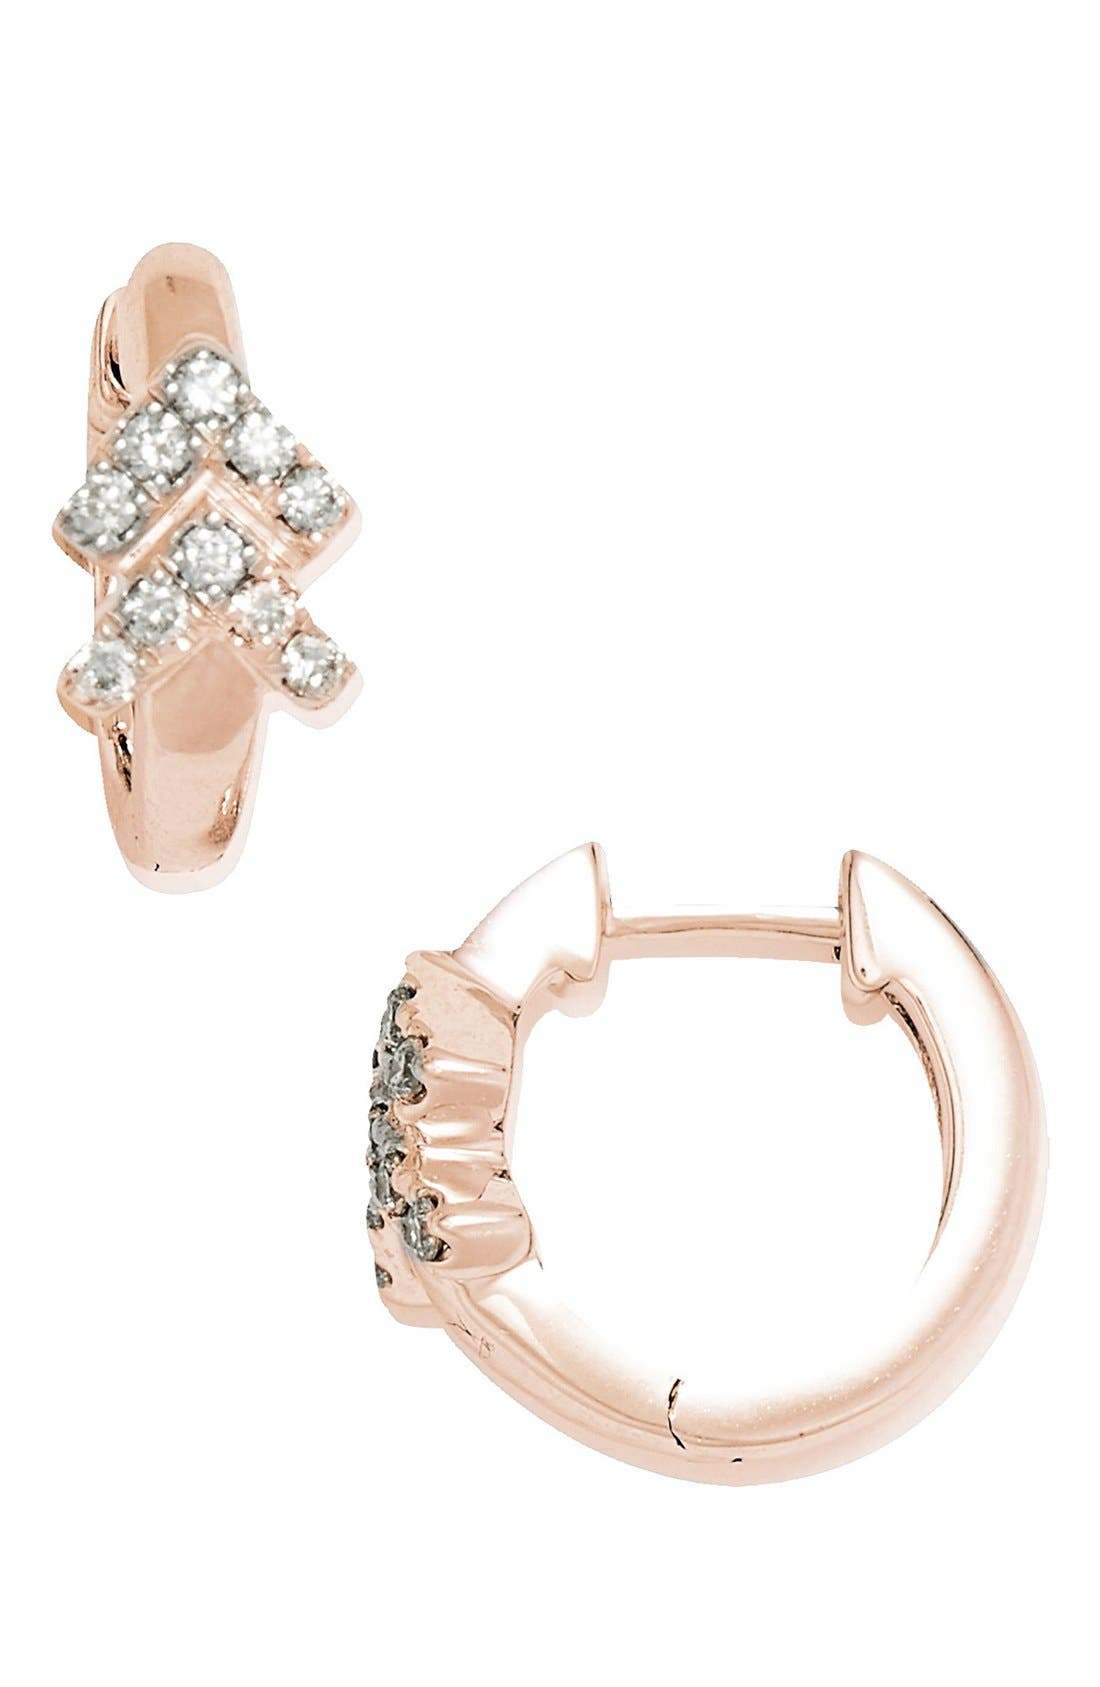 Double Arrow Diamond Hoop Earrings,                             Main thumbnail 1, color,                             Rose Gold